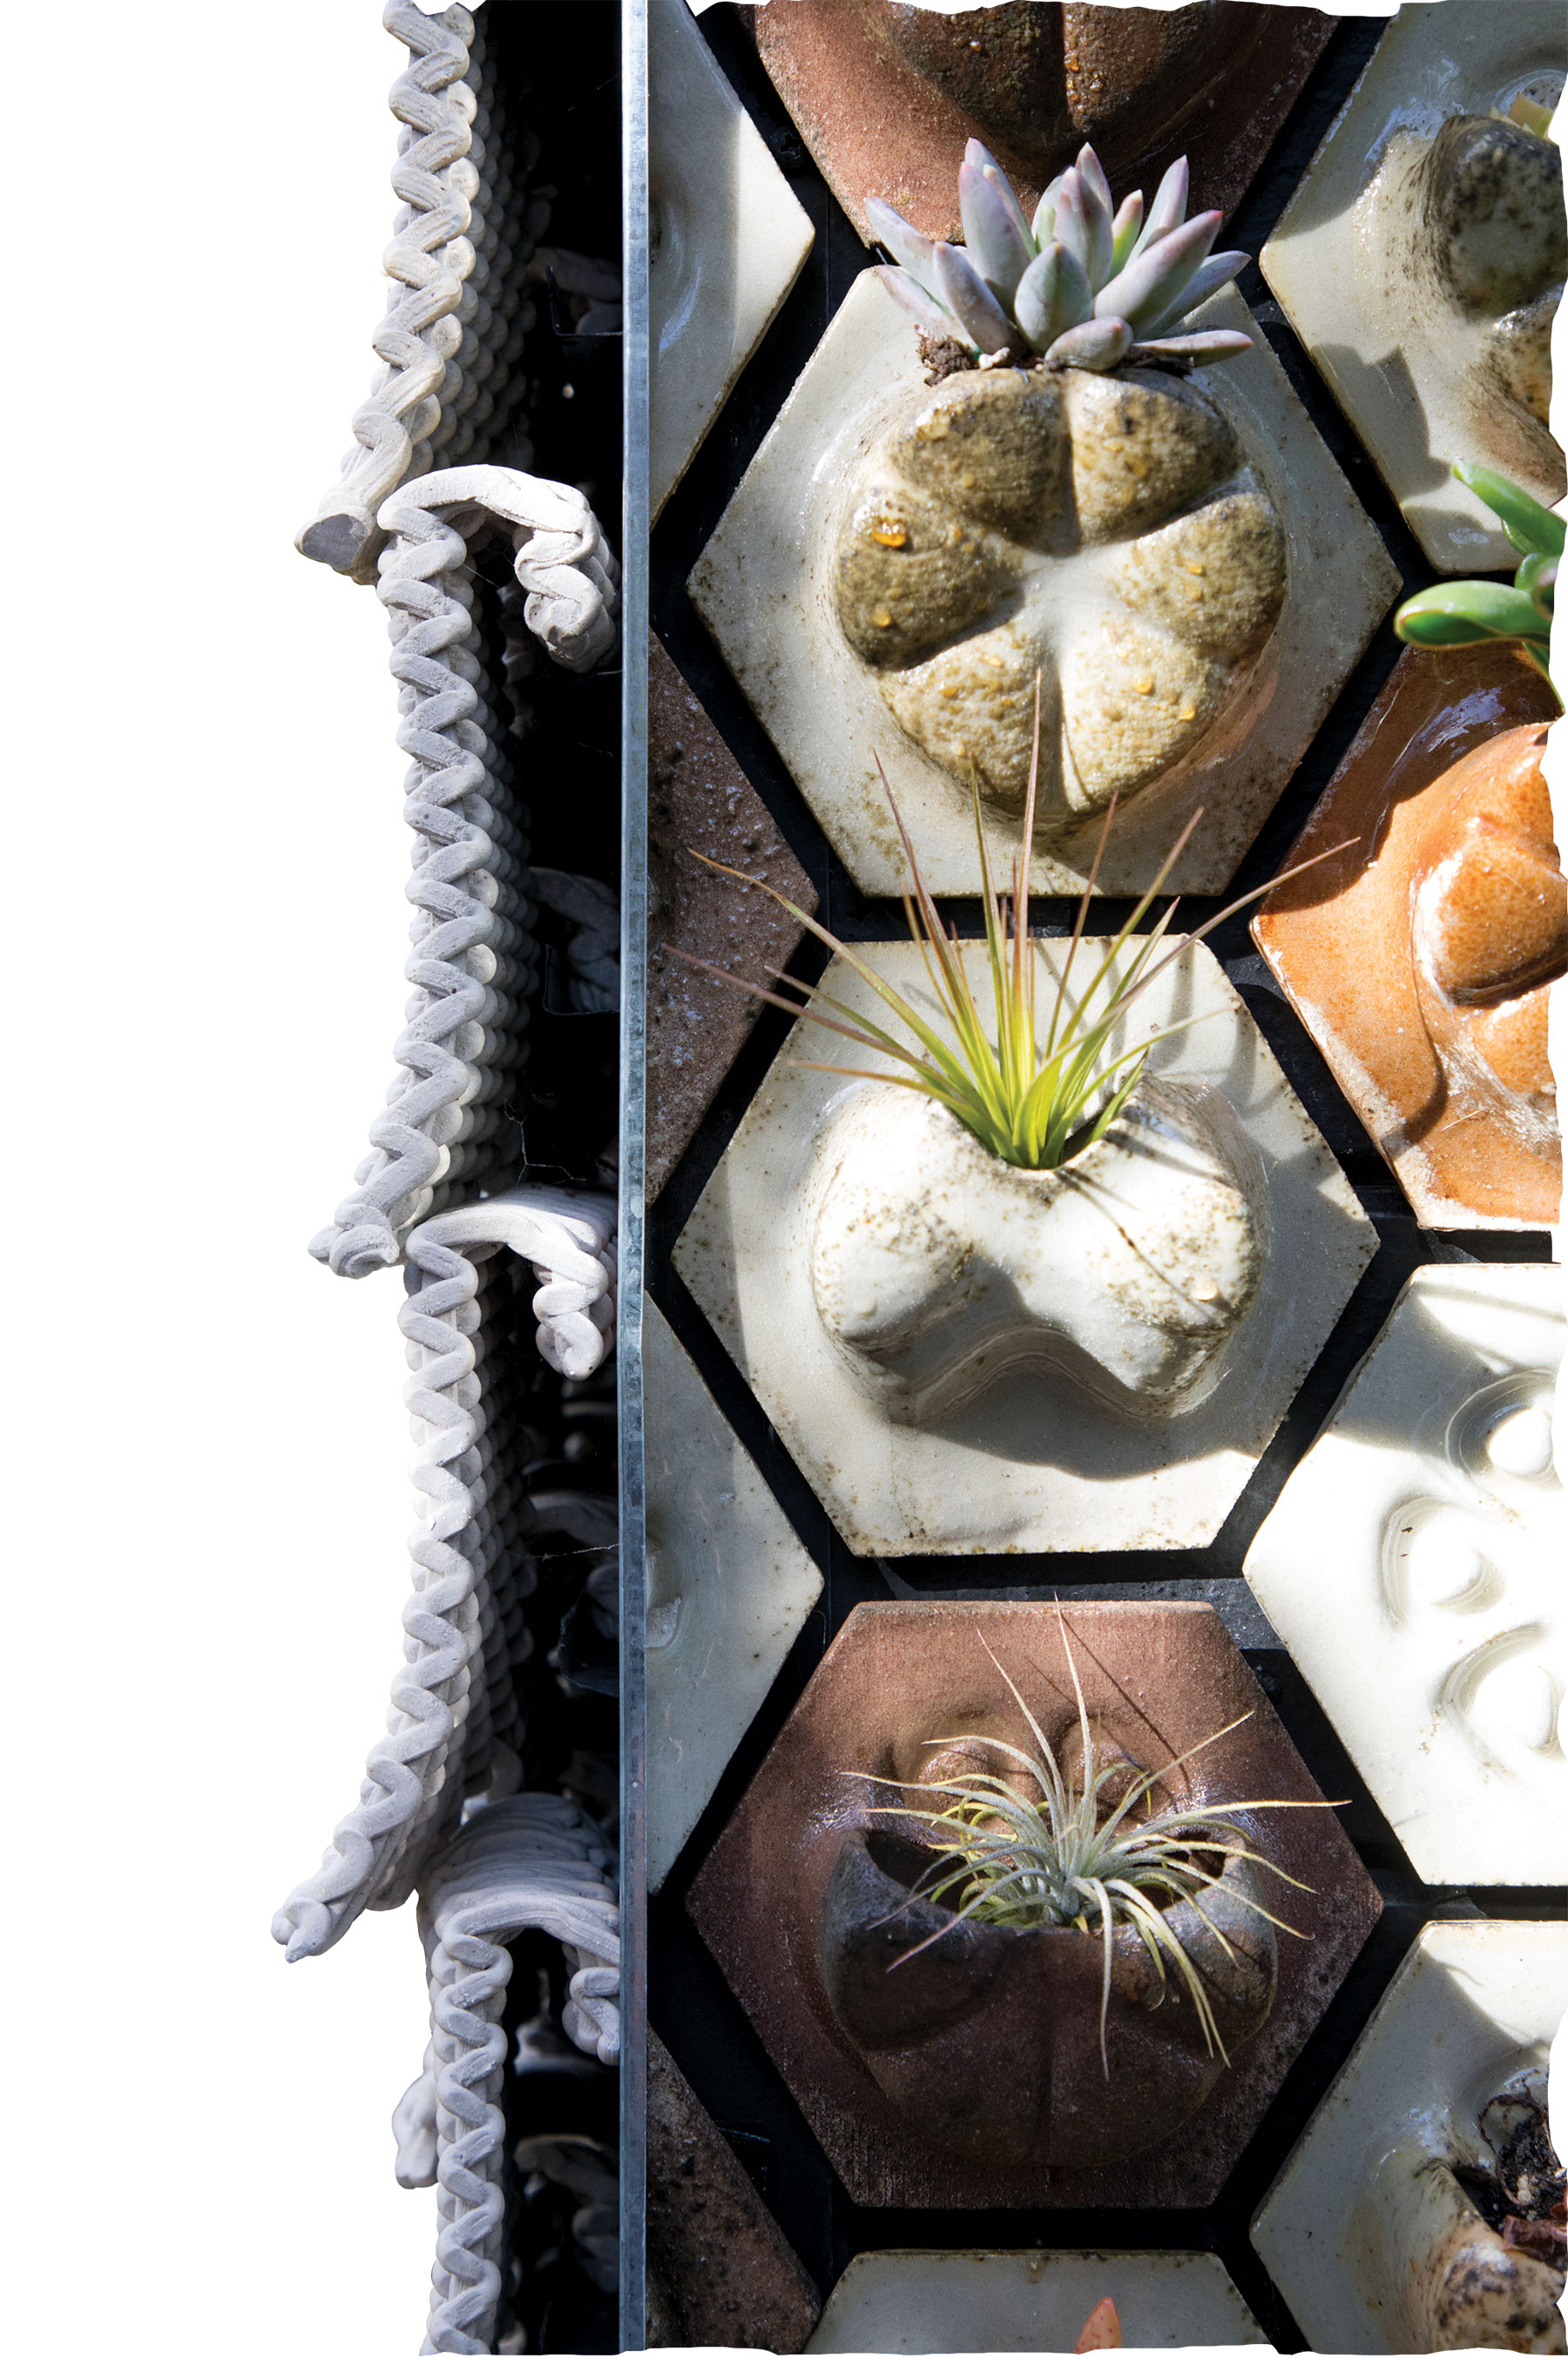 Ronald Rael. Cabin of 3D-Printed Curiosities, detail of ceramic Seed Stitch tile and hexagonal Planter Tiles. Photograph by Matthew Millman.